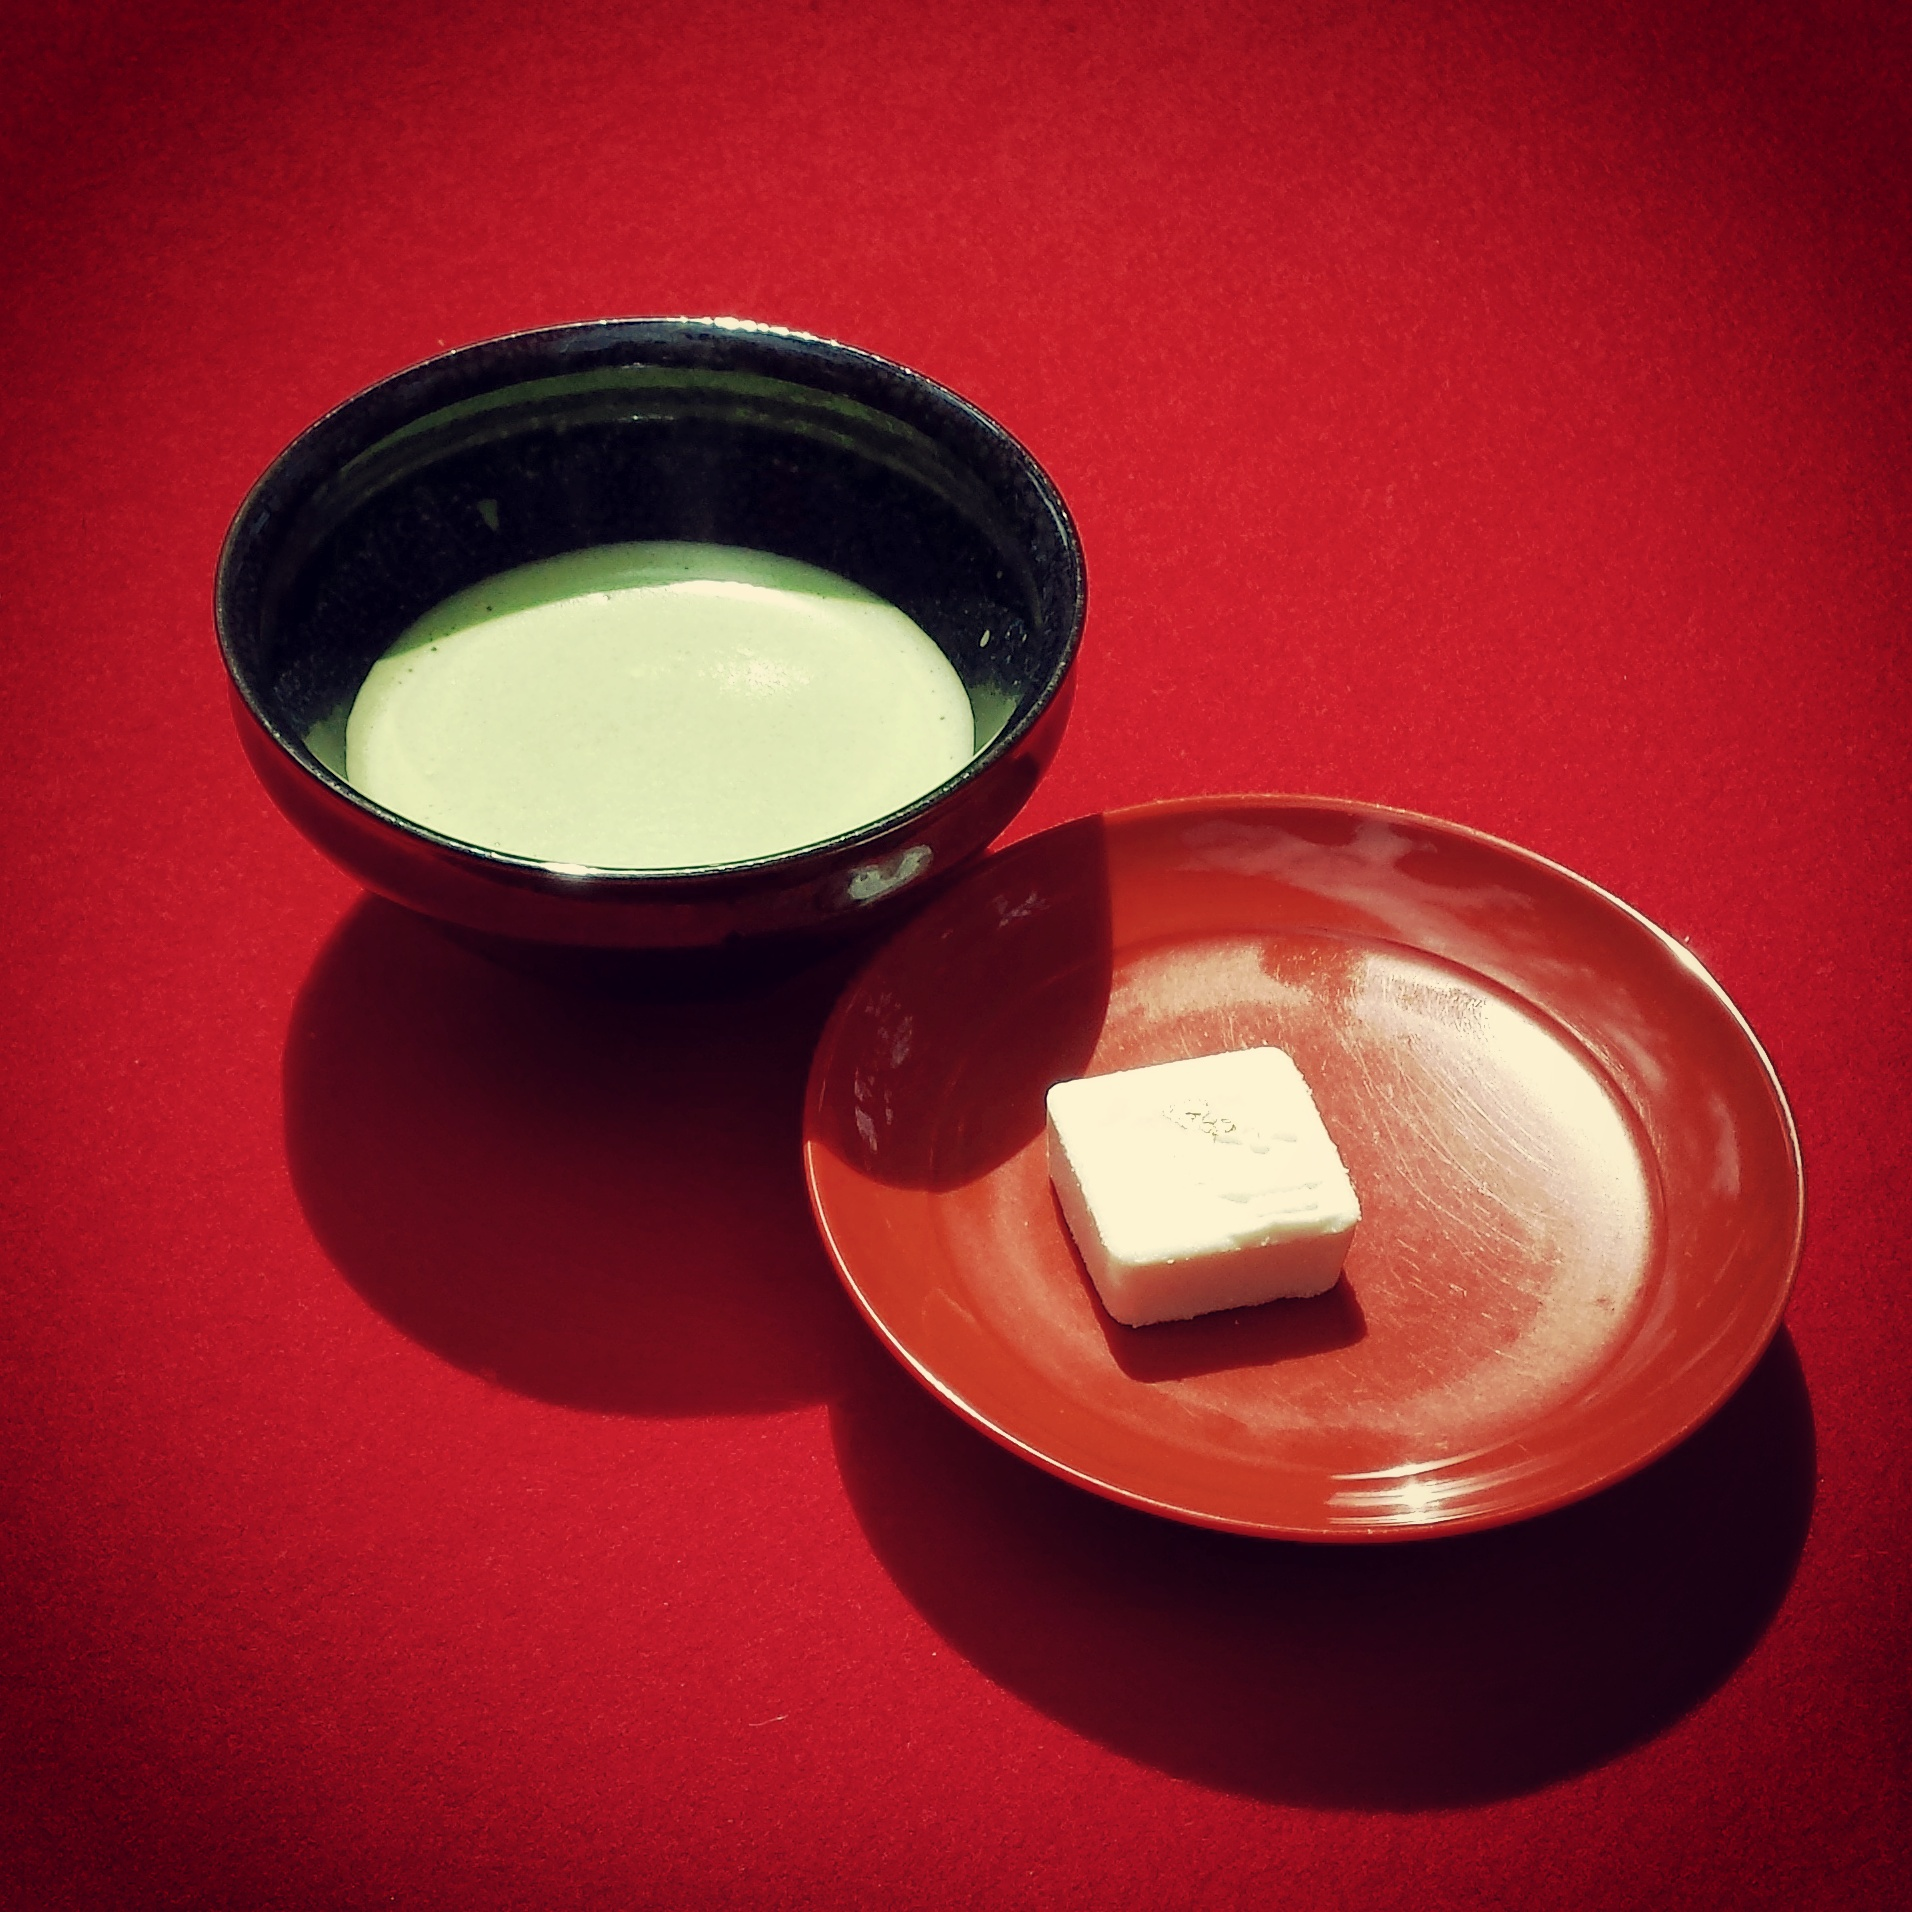 Ceremony Matcha